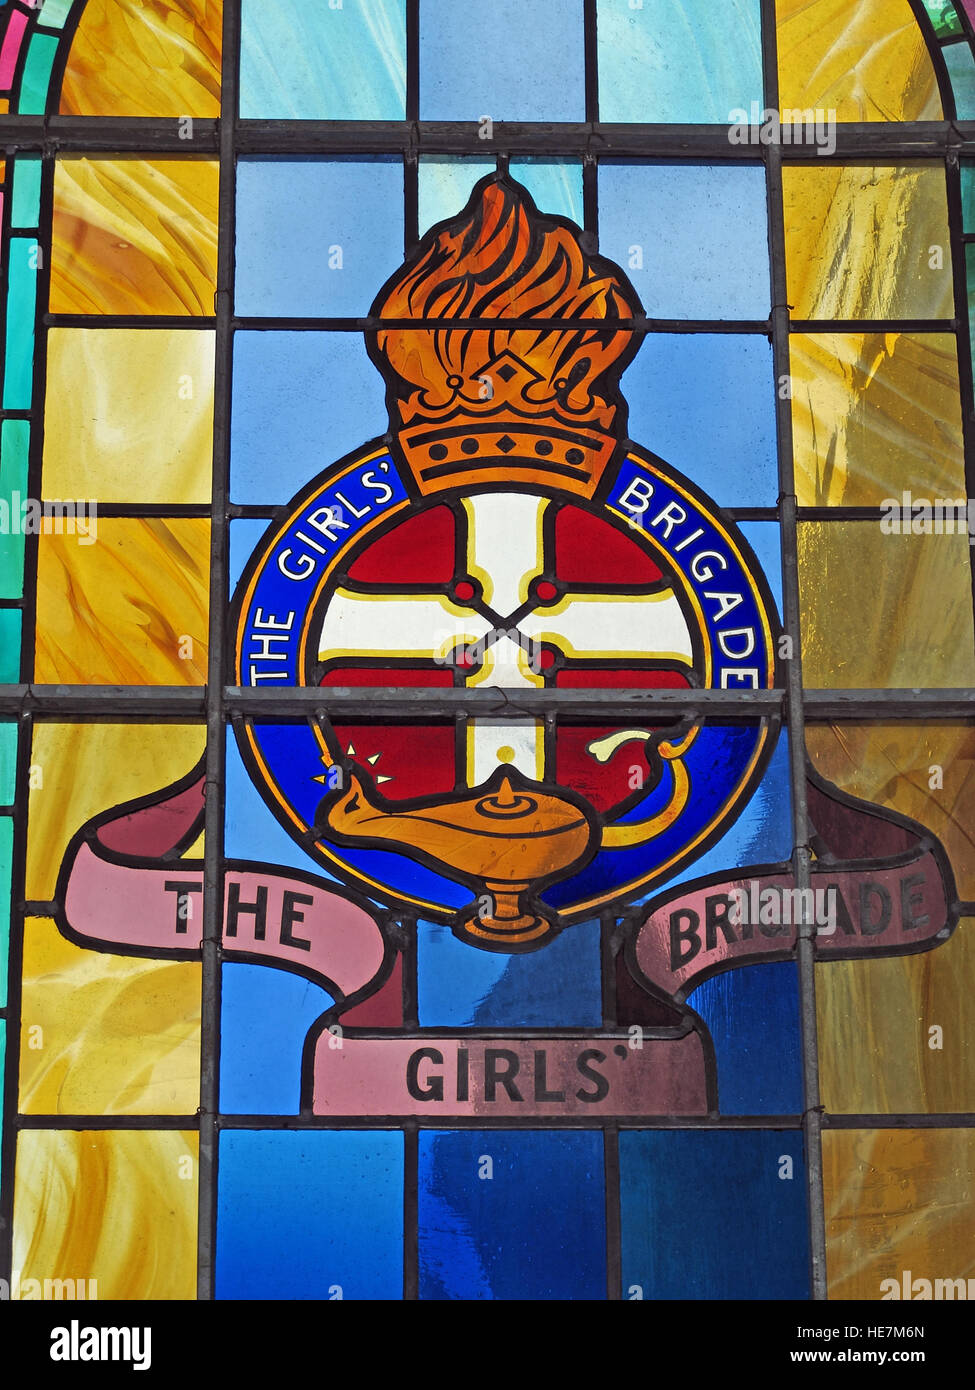 Inside,architecture,building,stone,arch,holy,St Annes,Belfast Cathedral,saint,Annes,Girls Brigade,detail,of,stained,glass,window,yellow,blue,red,lamp,GoTonySmith,@HotpixUK,Tony,Smith,UK,GB,Great,Britain,United,Kingdom,Irish,British,Ireland,problem,with,problem with,issue with,NI,Northern,Northern Ireland,Belfast,City,Centre,Art,Artists,the,troubles,The Troubles,Good Friday Agreement,Peace,honour,painting,wall,walls,tribute,republicanism,Fight,Justice,West,Beal,feirste,martyrs,social,tour,tourism,tourists,urban,six,counties,6,backdrop,county,Antrim,Quarter,Buy Pictures of,Buy Images Of,Images of,Stock Images,Tony Smith,United Kingdom,Great Britain,British Isles